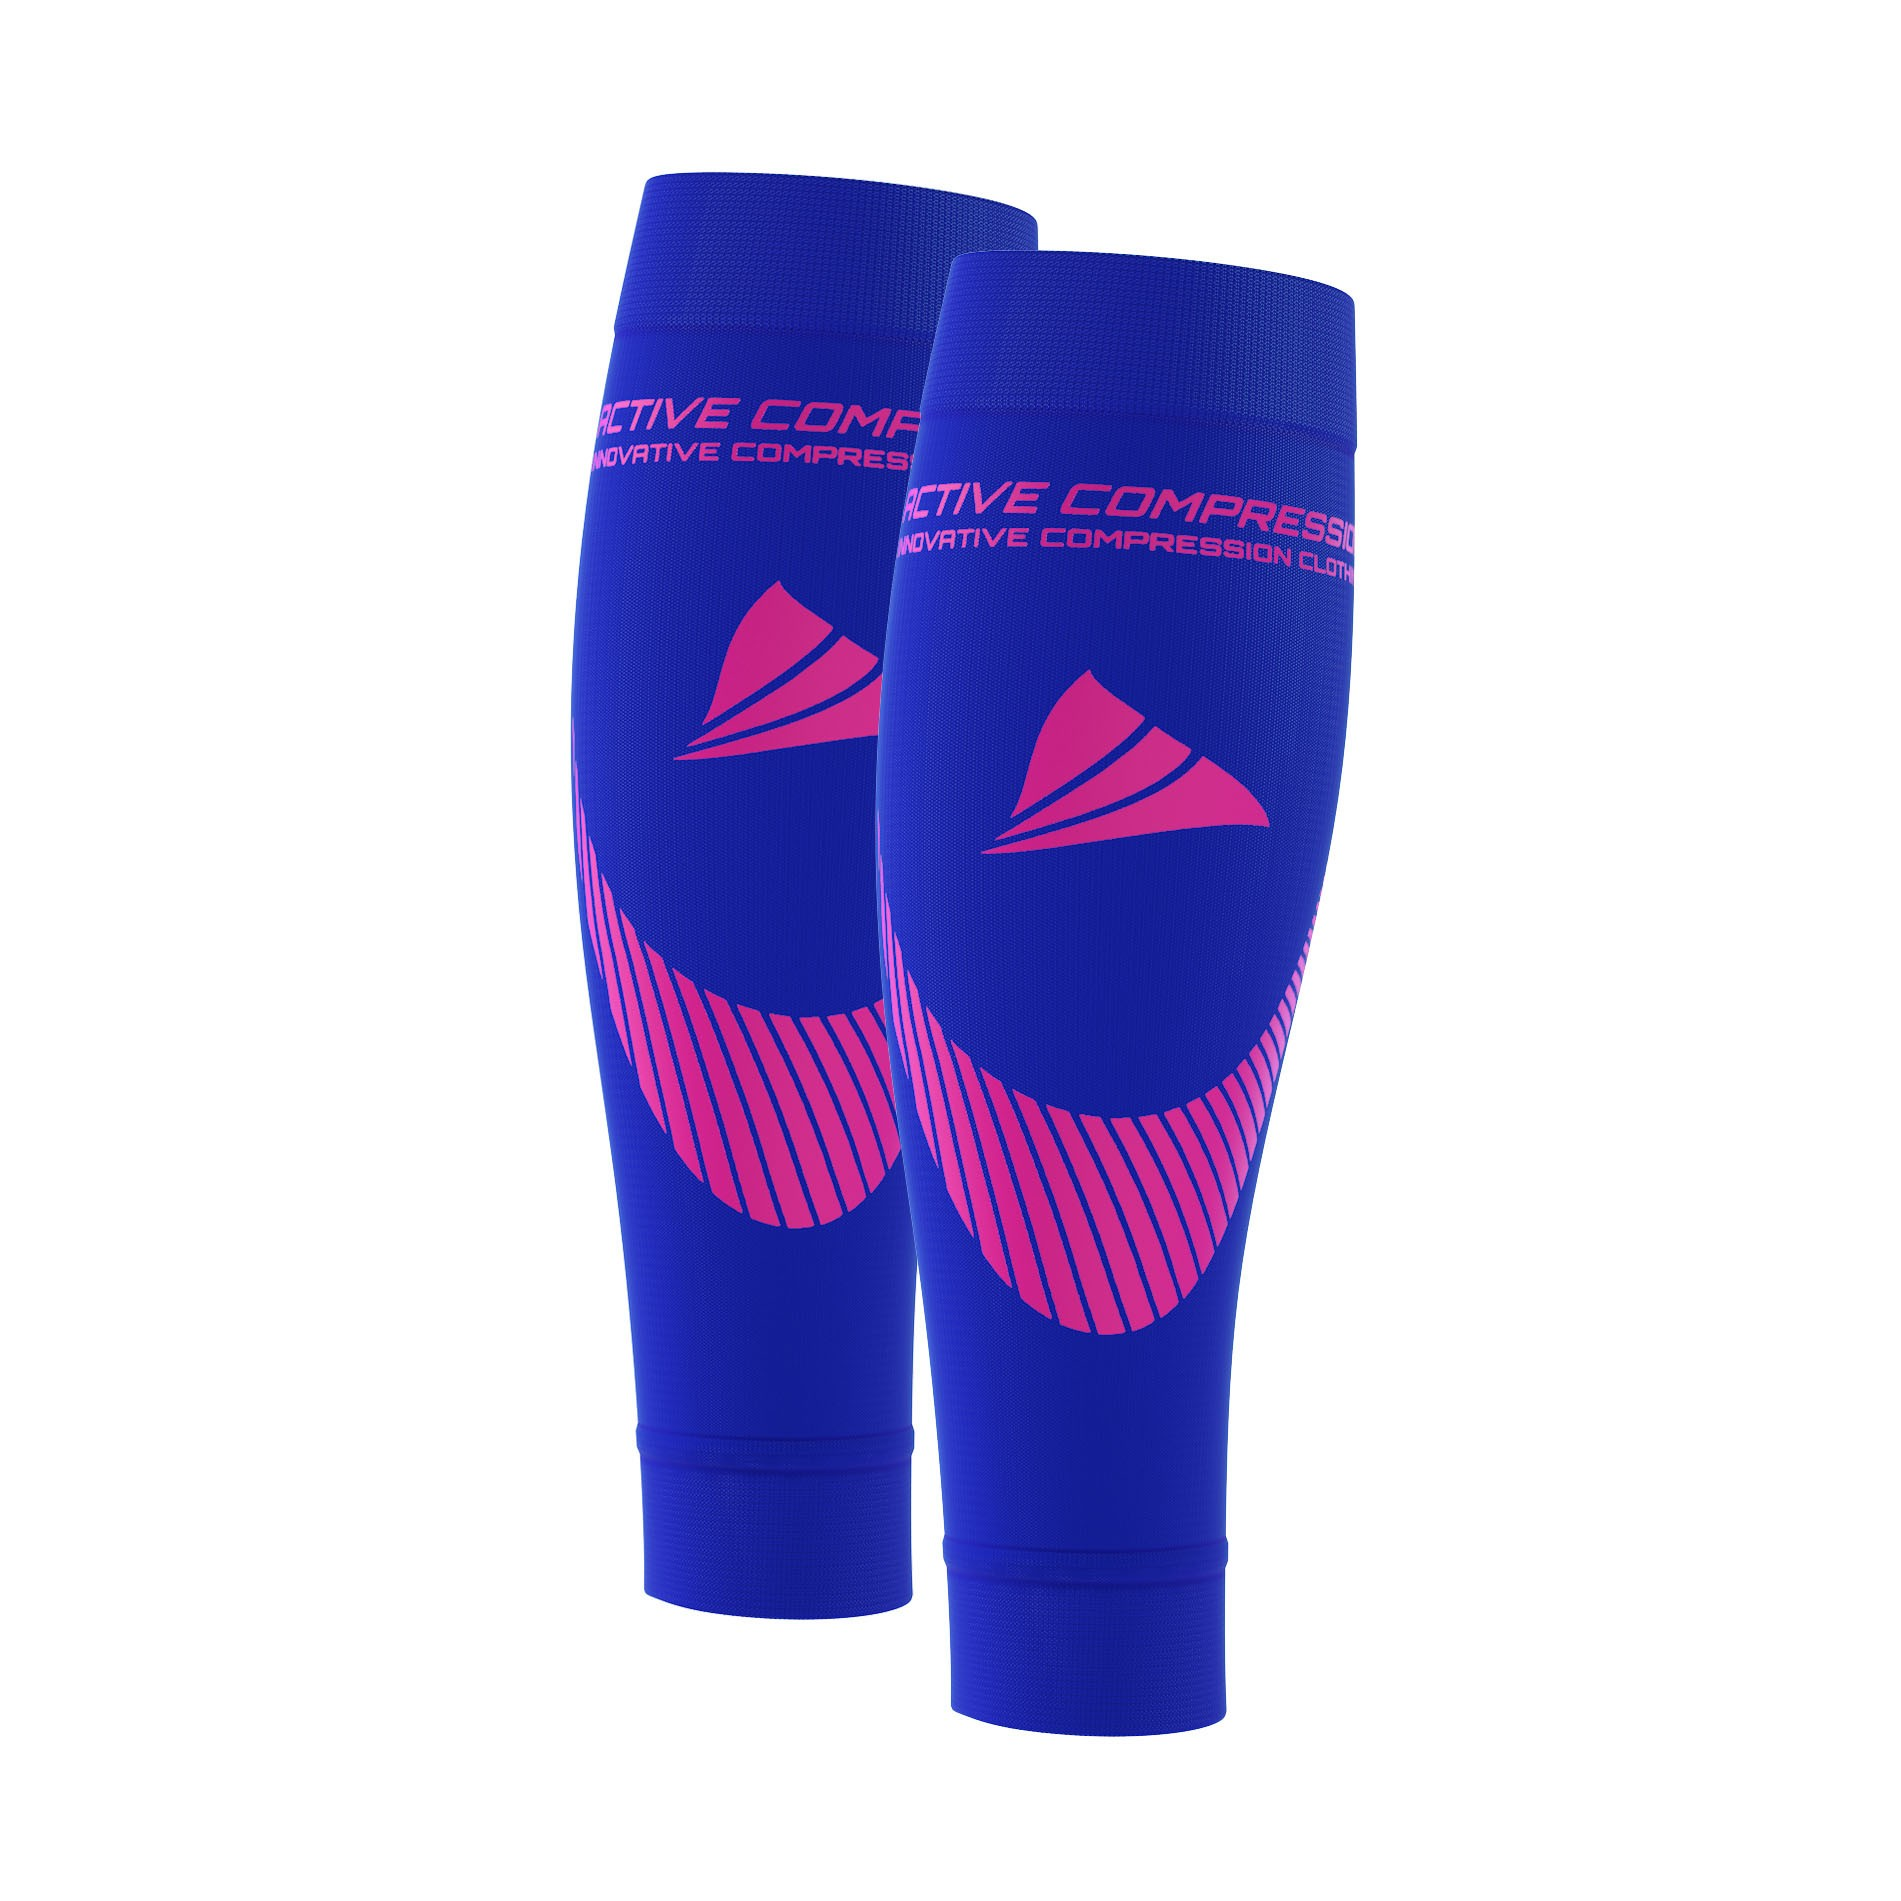 PERFORMANCE CALF SLEEVES – extra strong - blau/pink